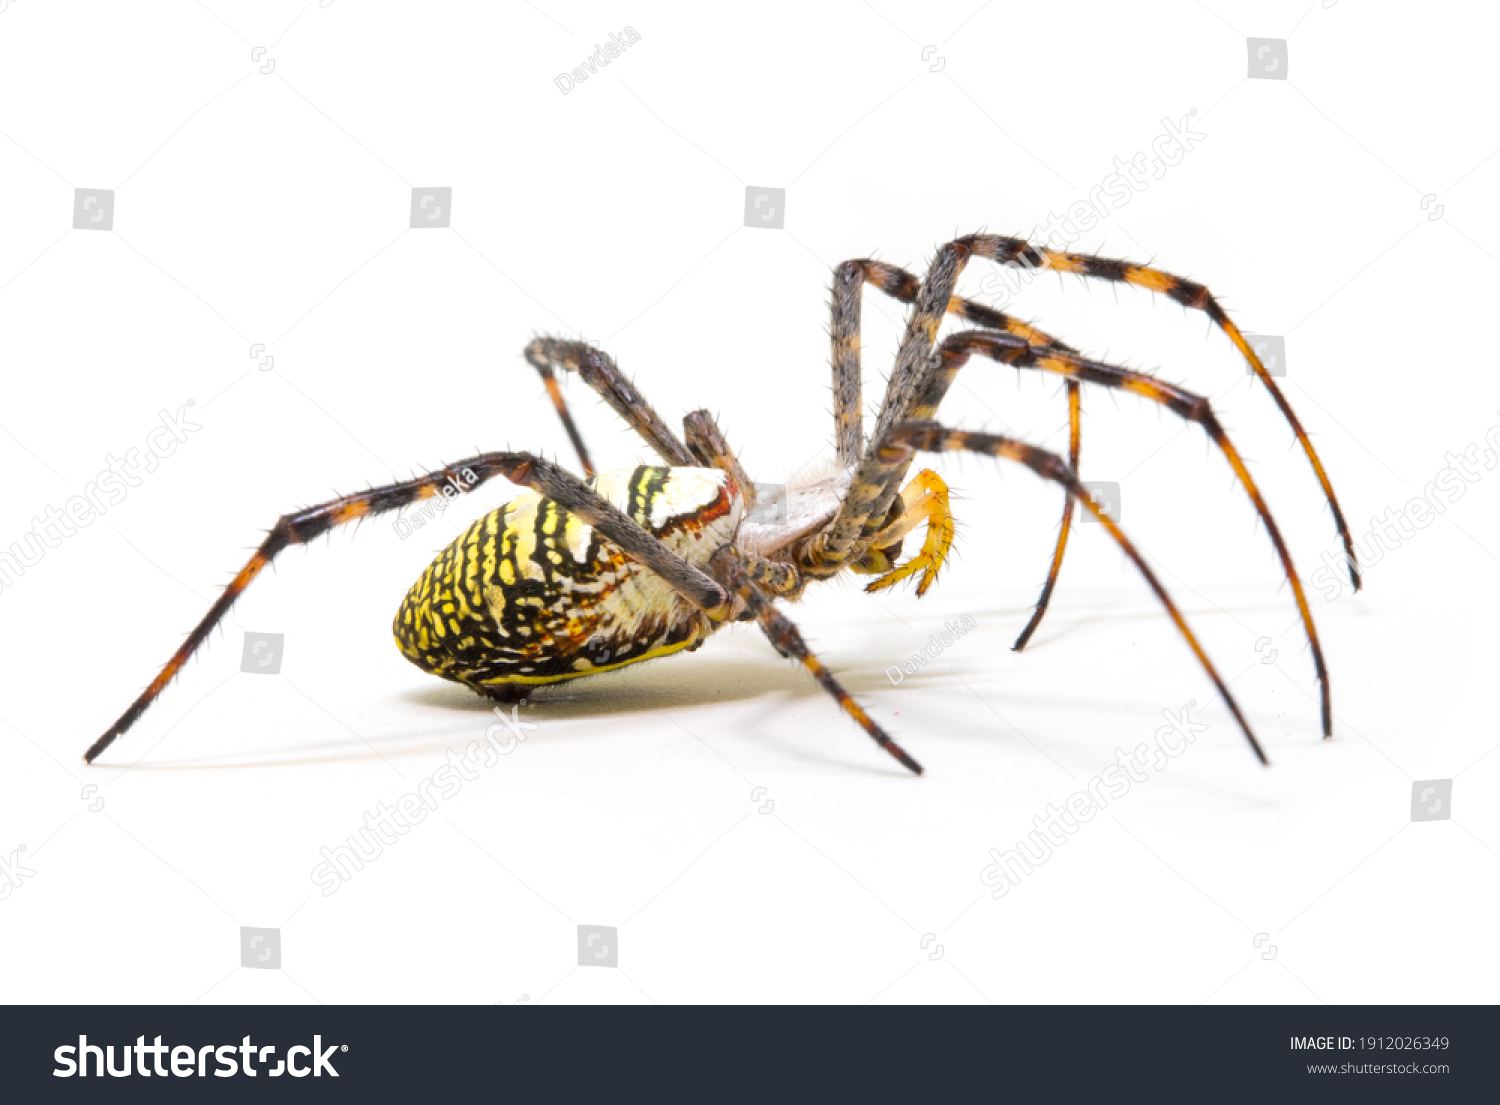 Colorful spider on white background, close up photo. Yellow black spider on white background. Tropical insect crab spider closeup photo. Exotic spider detailed macrophoto. Striped insect. Creepy bug.  #1912026349